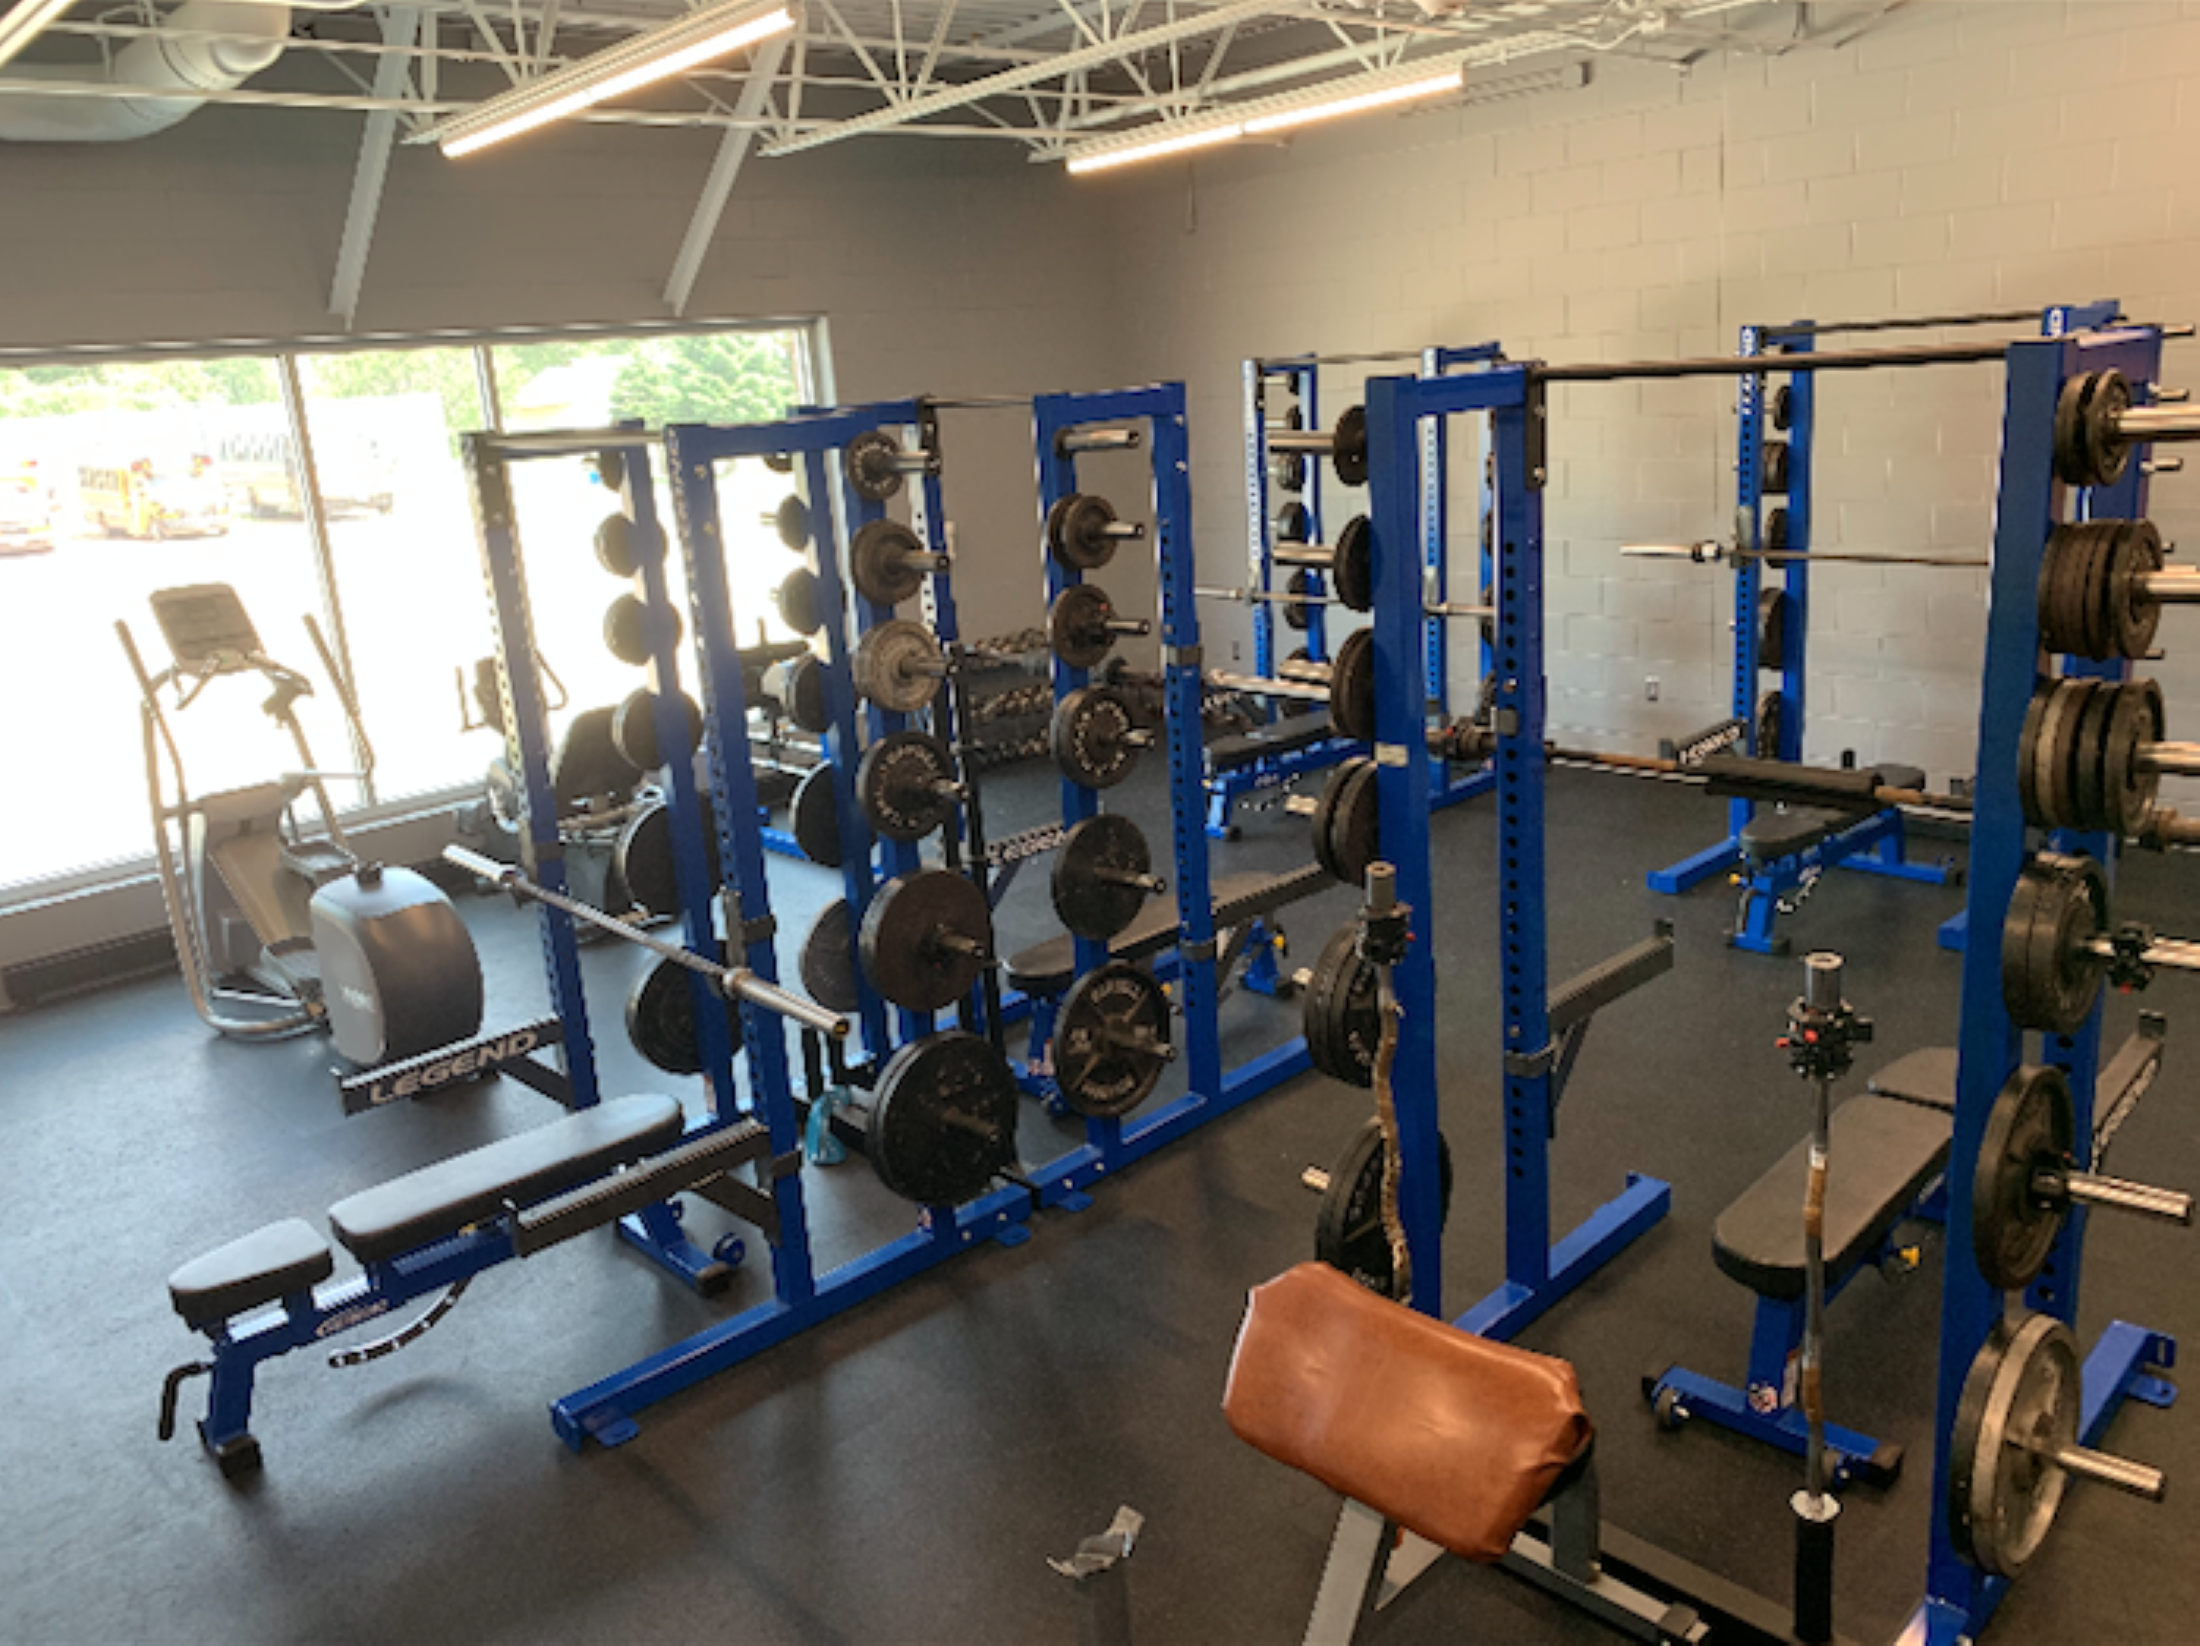 weight room 2 1 - Wynot Public Schools taking preventative measures against COVID-19